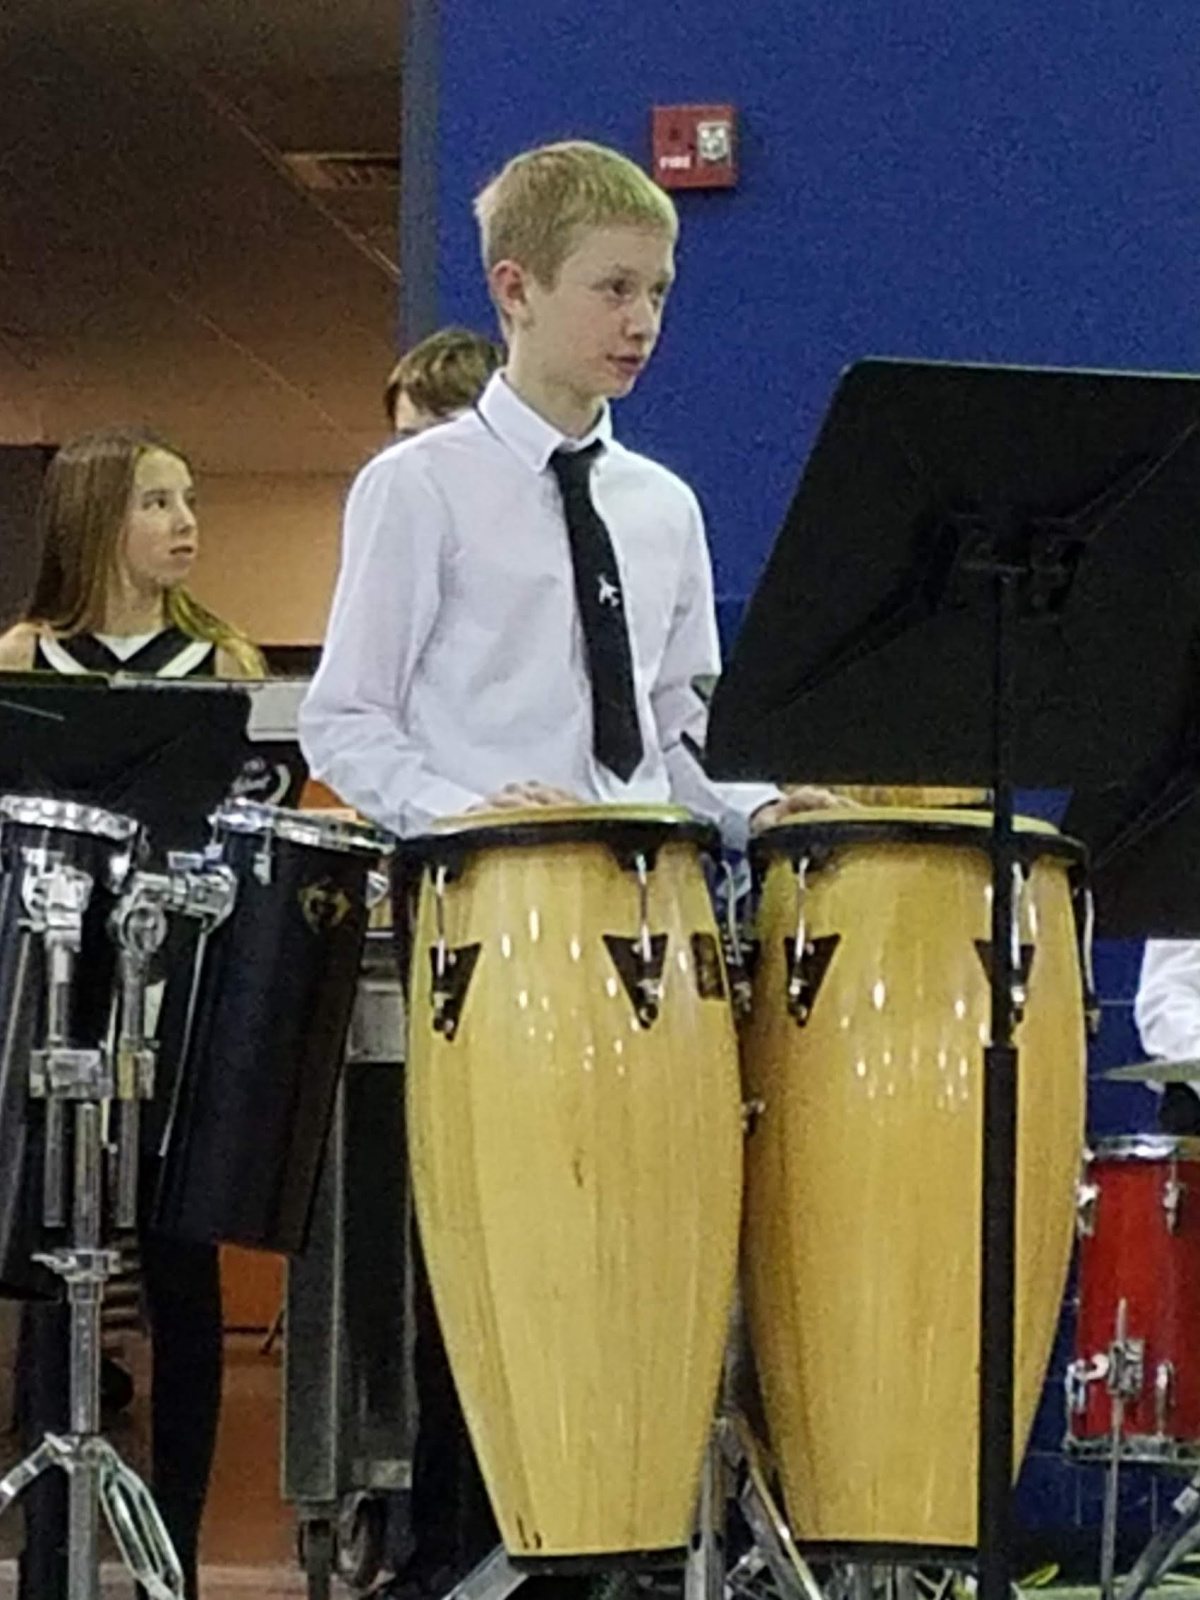 Day minus 1: Jazz Band Performance (3/5/19)